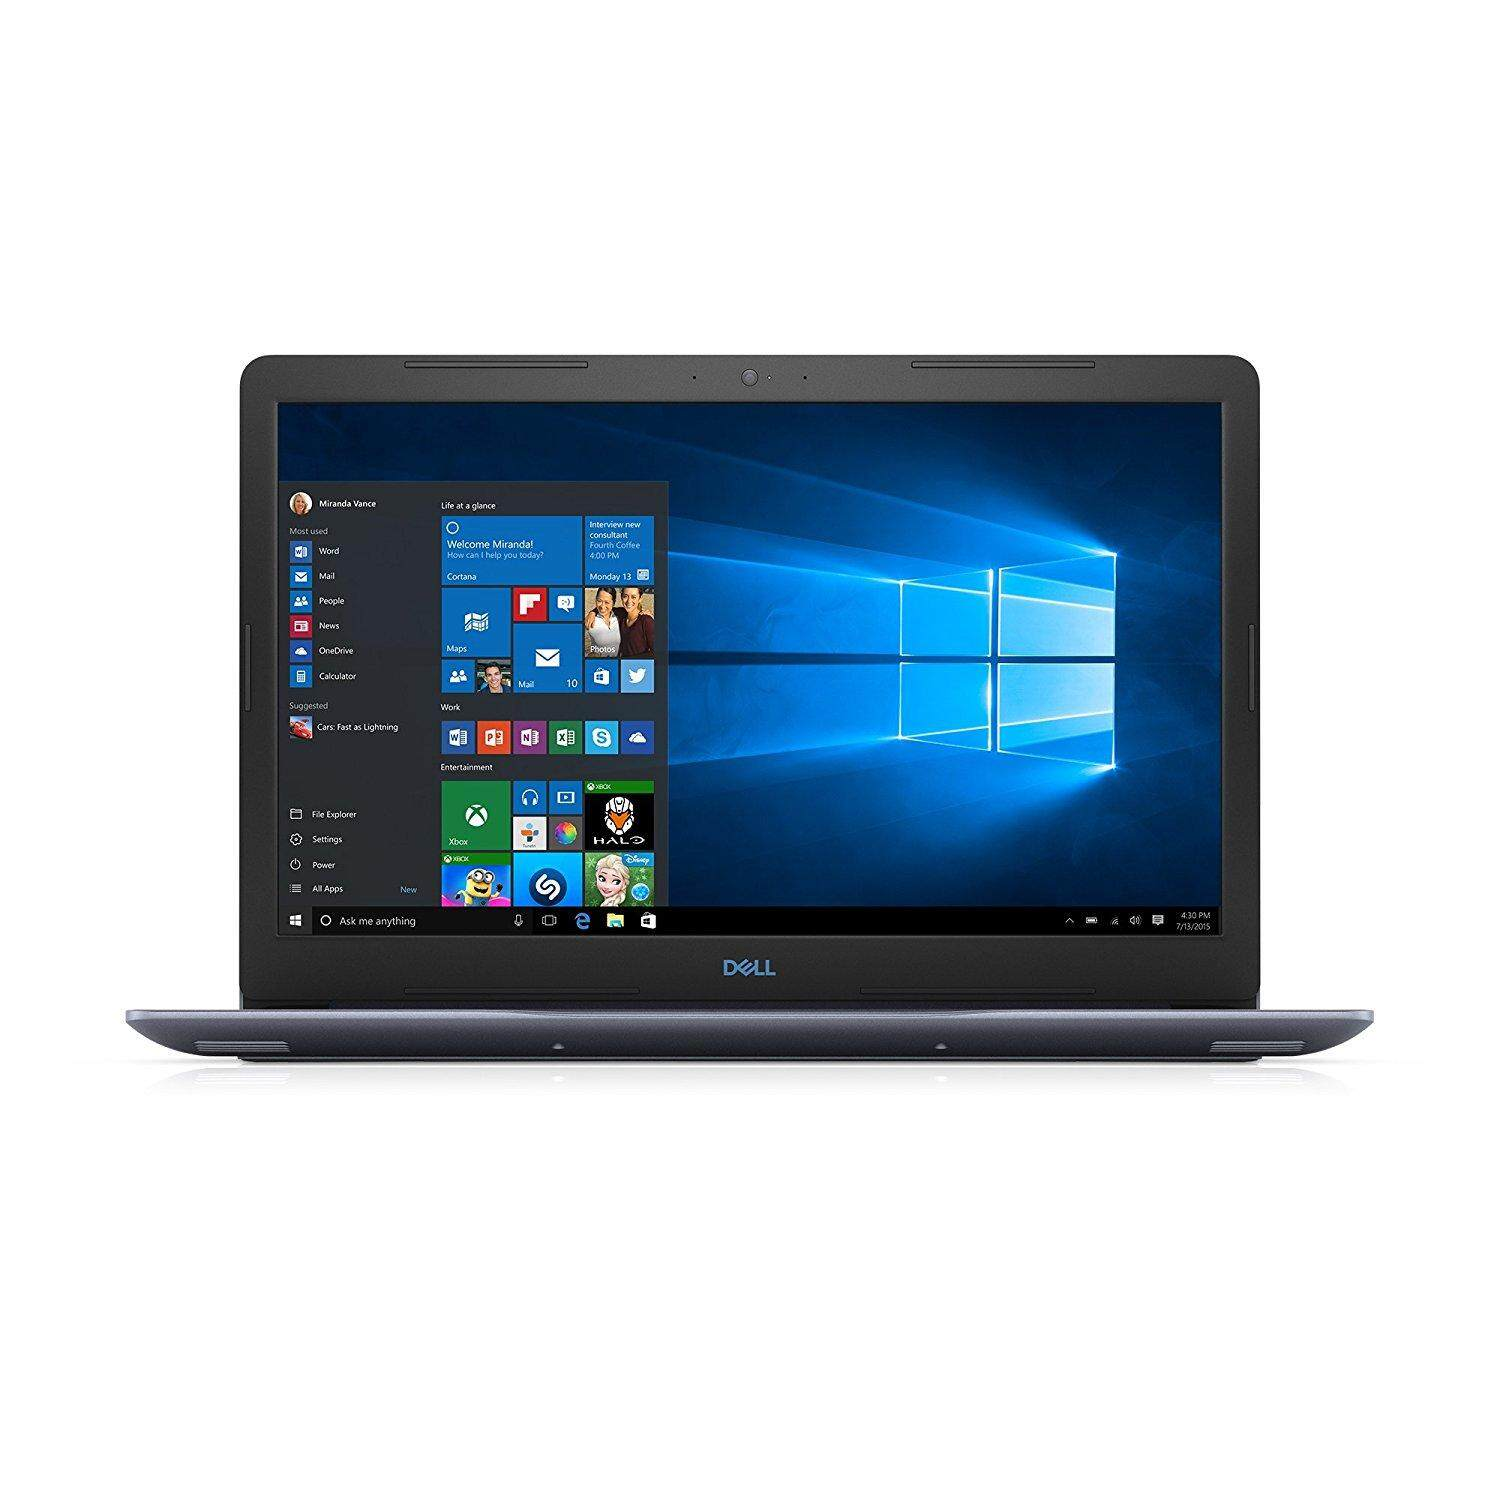 Dell G3 15 Gaming Laptop 15.6 inch, i7-8750H, 8GB DDR4, 256GB SSD, NVIDIA GeForce GTX 1 0 5 0 Ti 4GB GDDR5, Windows 10